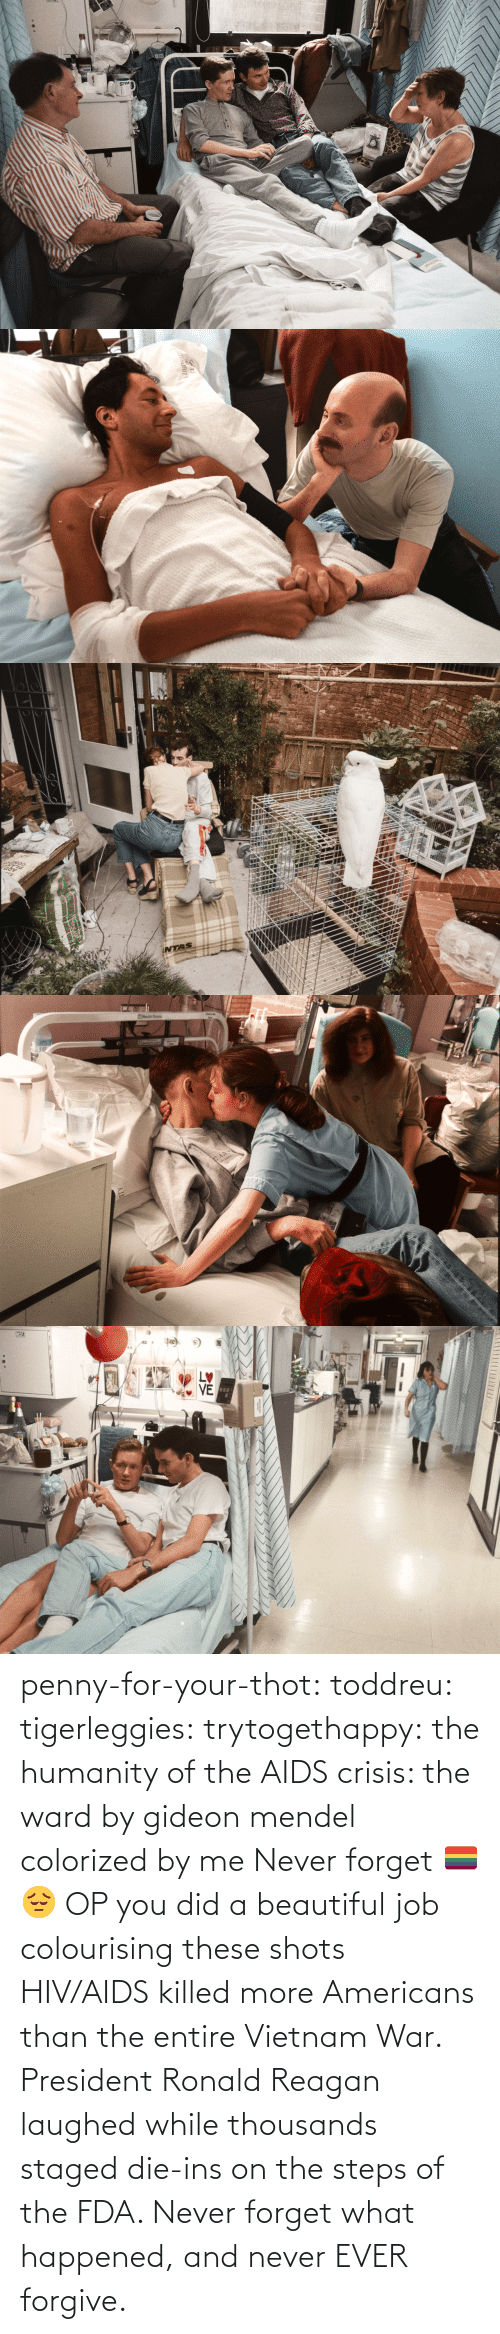 Beautiful, Thot, and Tumblr: STVE  yboagt   INTAS   ENesbit Evans  CAN   LETTI penny-for-your-thot: toddreu:  tigerleggies:  trytogethappy:  the humanity of the AIDS crisis: the ward by gideon mendel colorized by me   Never forget 🏳️🌈😔   OP you did a beautiful job colourising these shots   HIV/AIDS killed more Americans than the entire Vietnam War. President Ronald Reagan laughed while thousands staged die-ins on the steps of the FDA. Never forget what happened, and never EVER forgive.